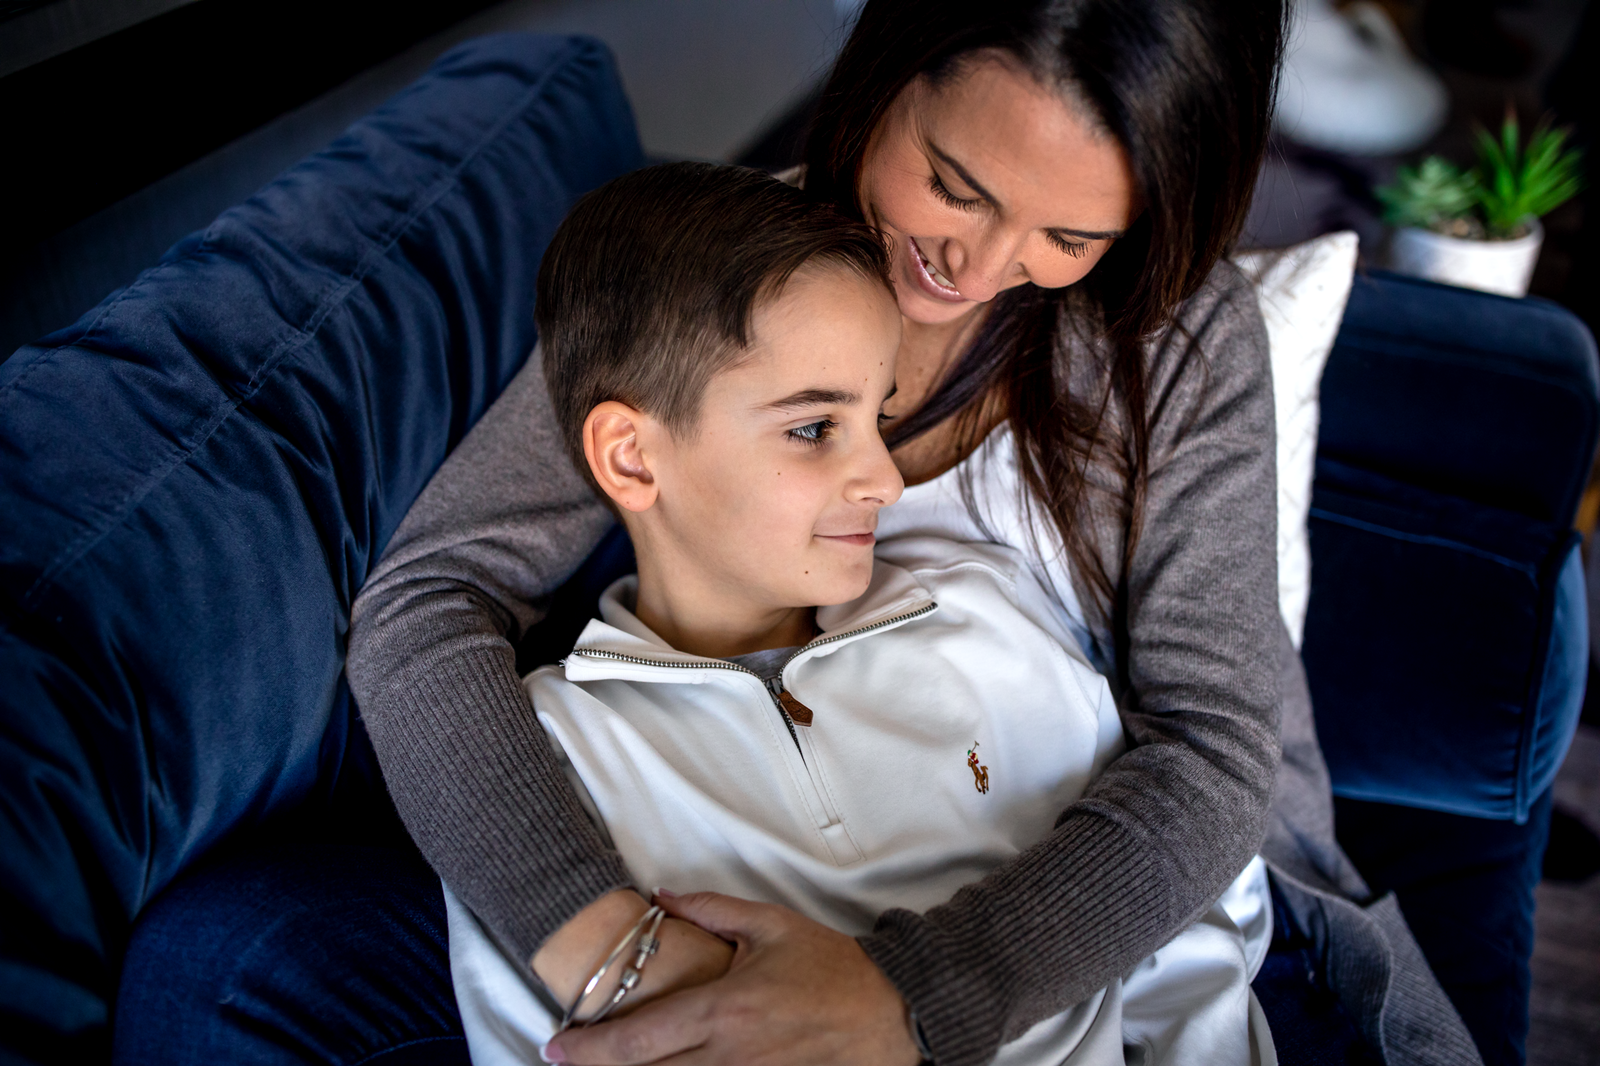 family photographer, columbus, ga, atlanta, wander years, mom hugging son on couch, ker-fox photography_0703